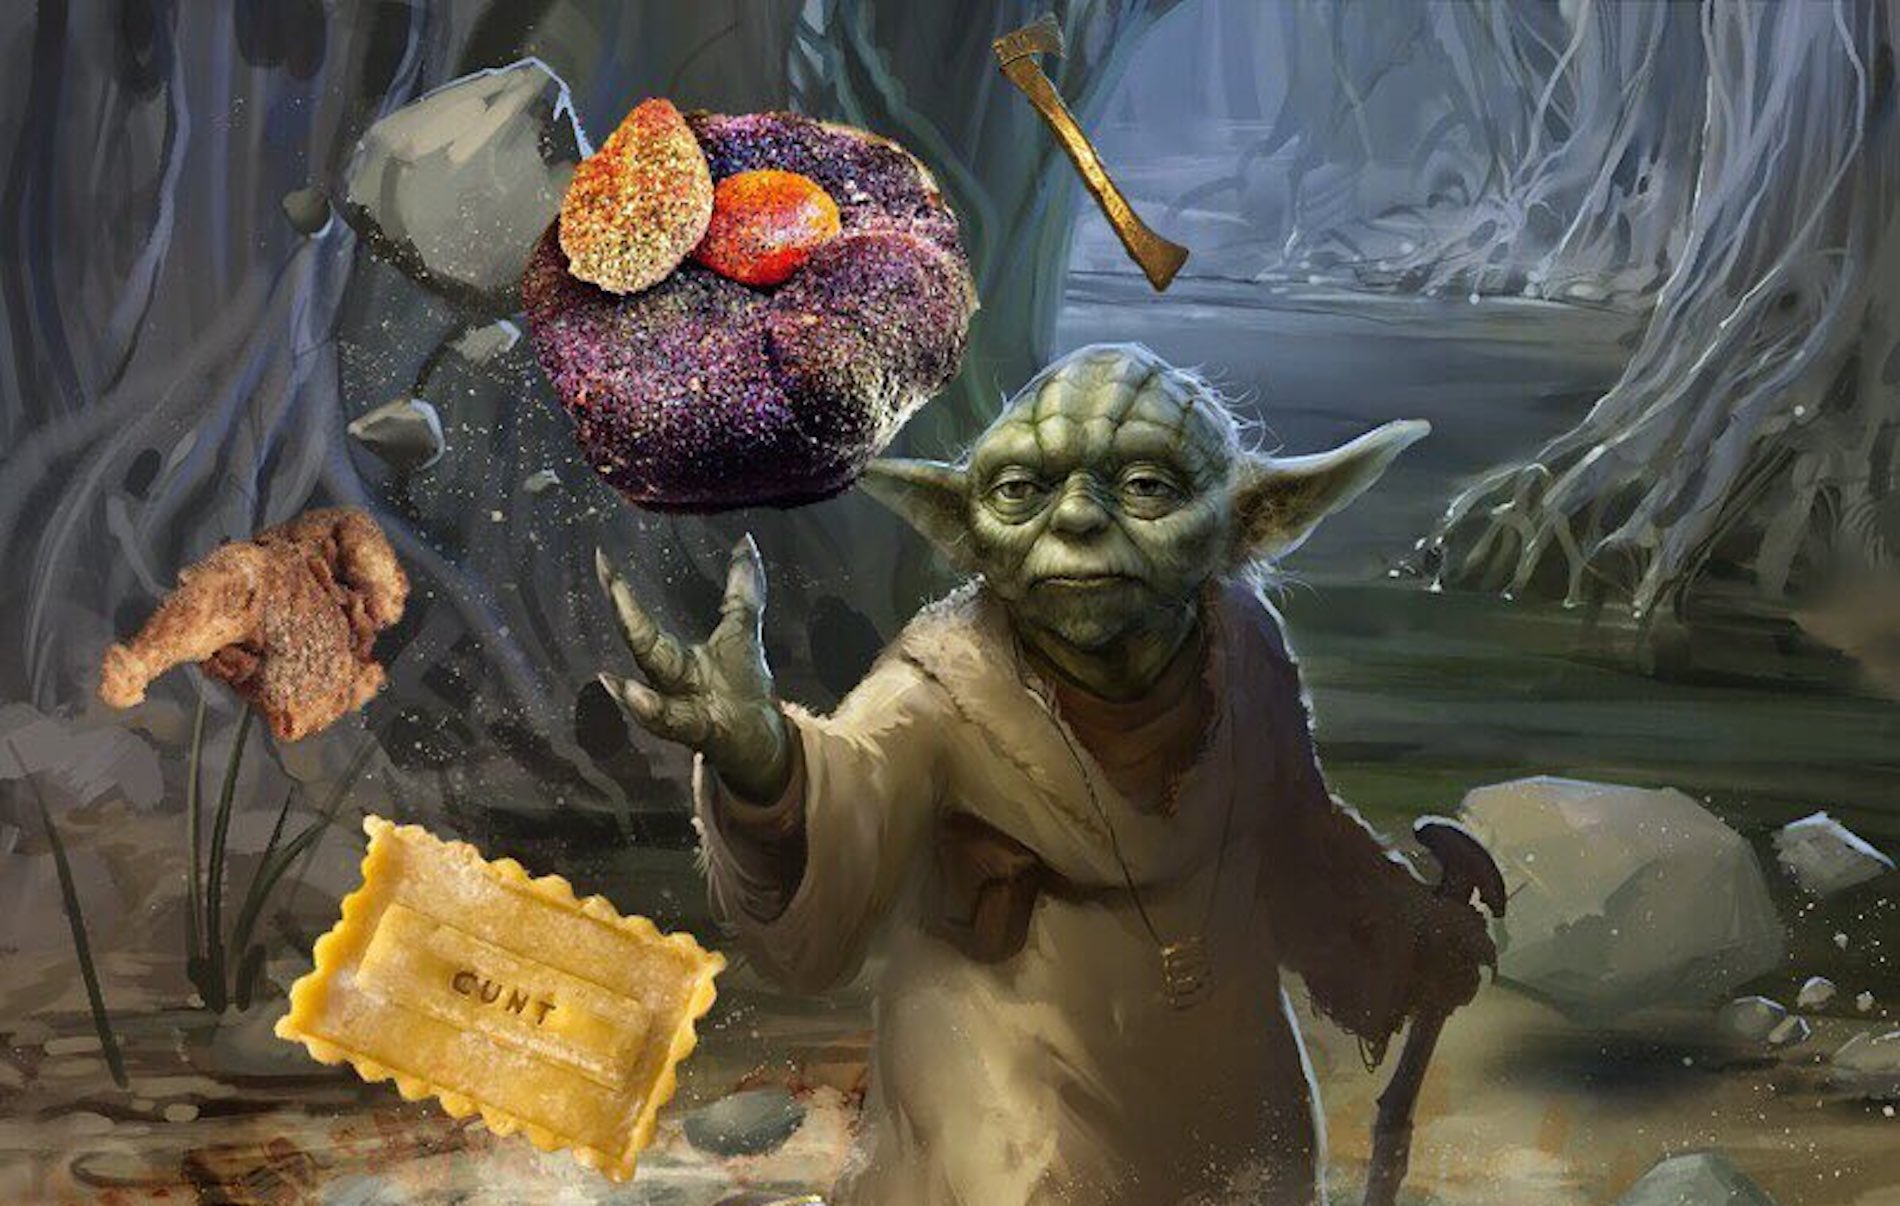 London restaurant Black Axe Mangal went to town for Star Wars Day 2019